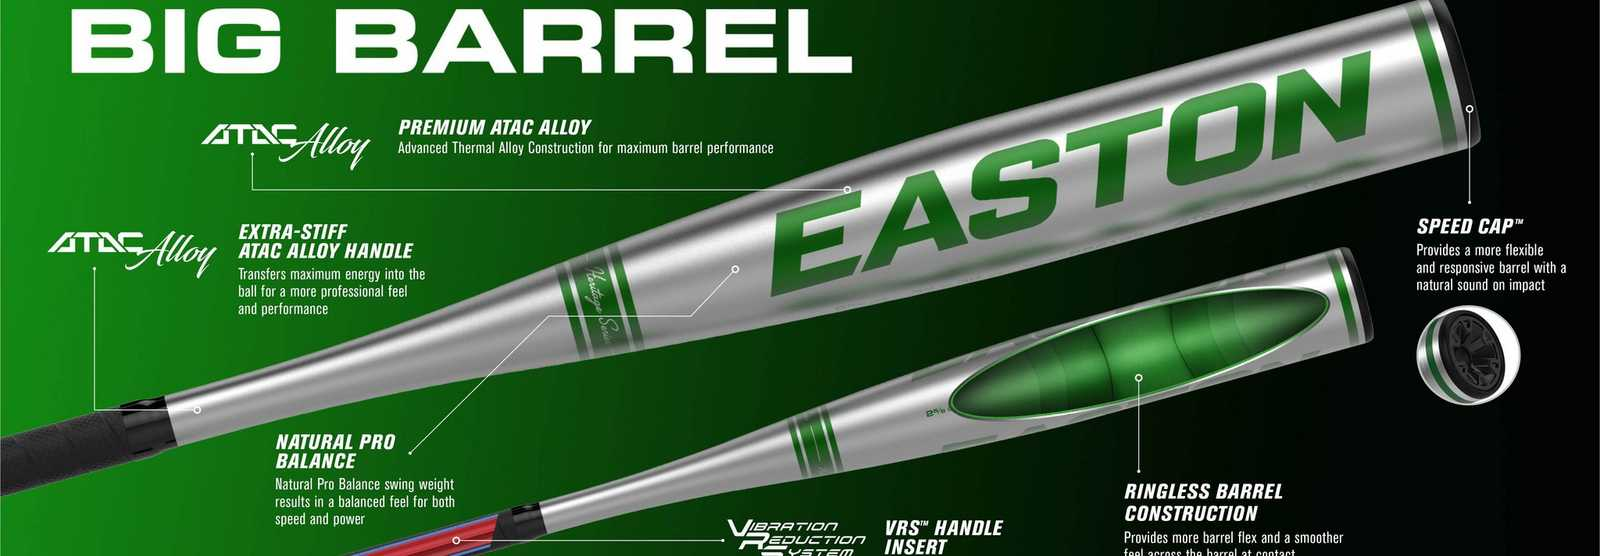 b5-pro-big-barrel-baseball-bat-tech